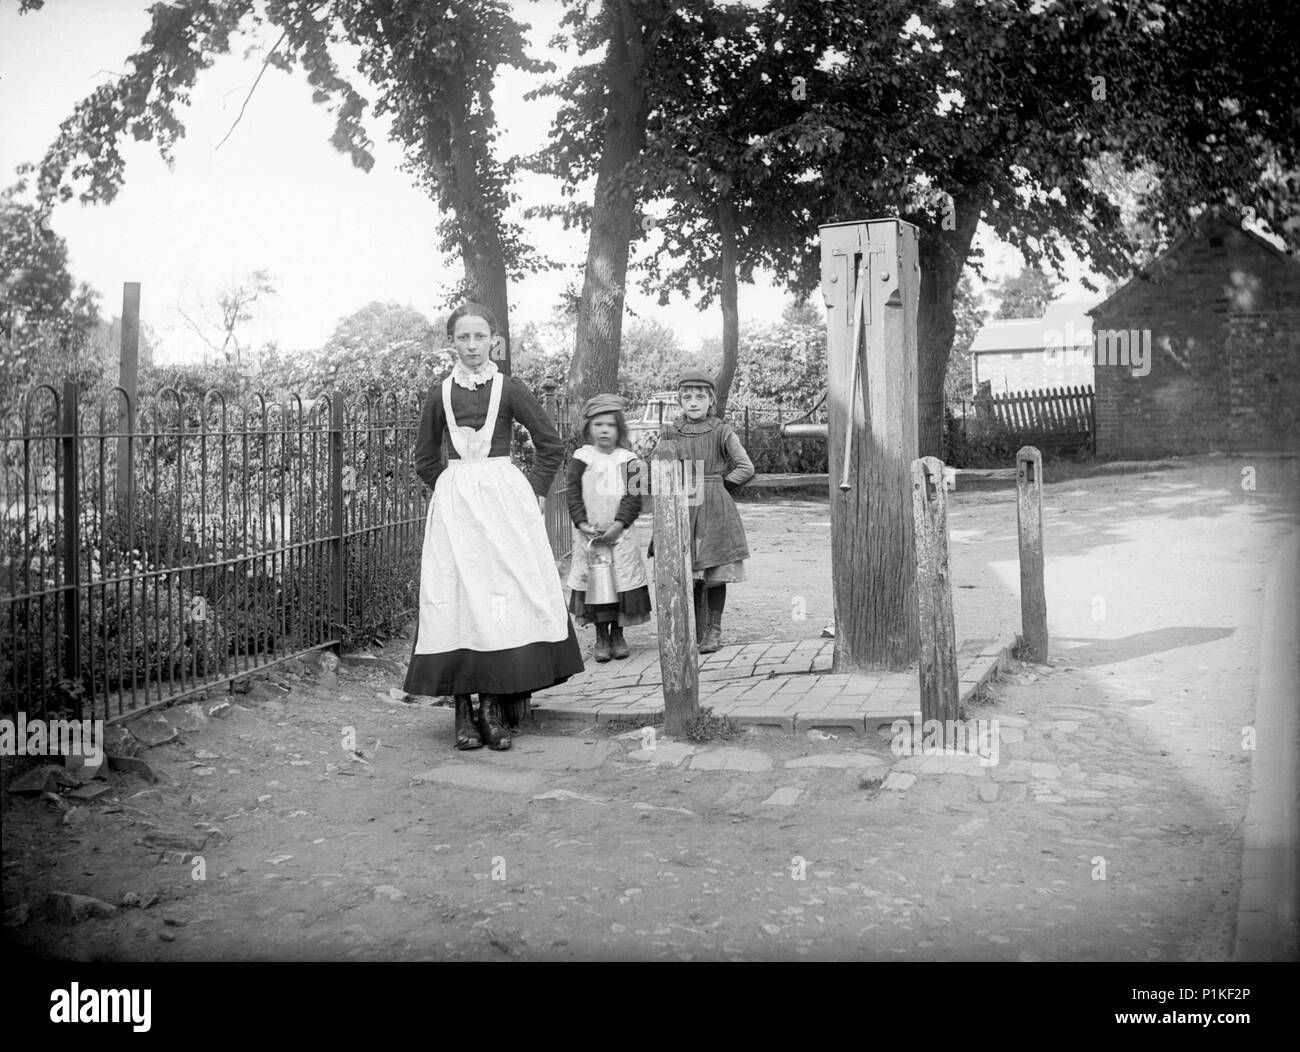 Village pump, Grandborough, Warwickshire, 1901. A young servant girl has been sent to fetch water from the village pump. Two urchins are on a similar  Stock Photo